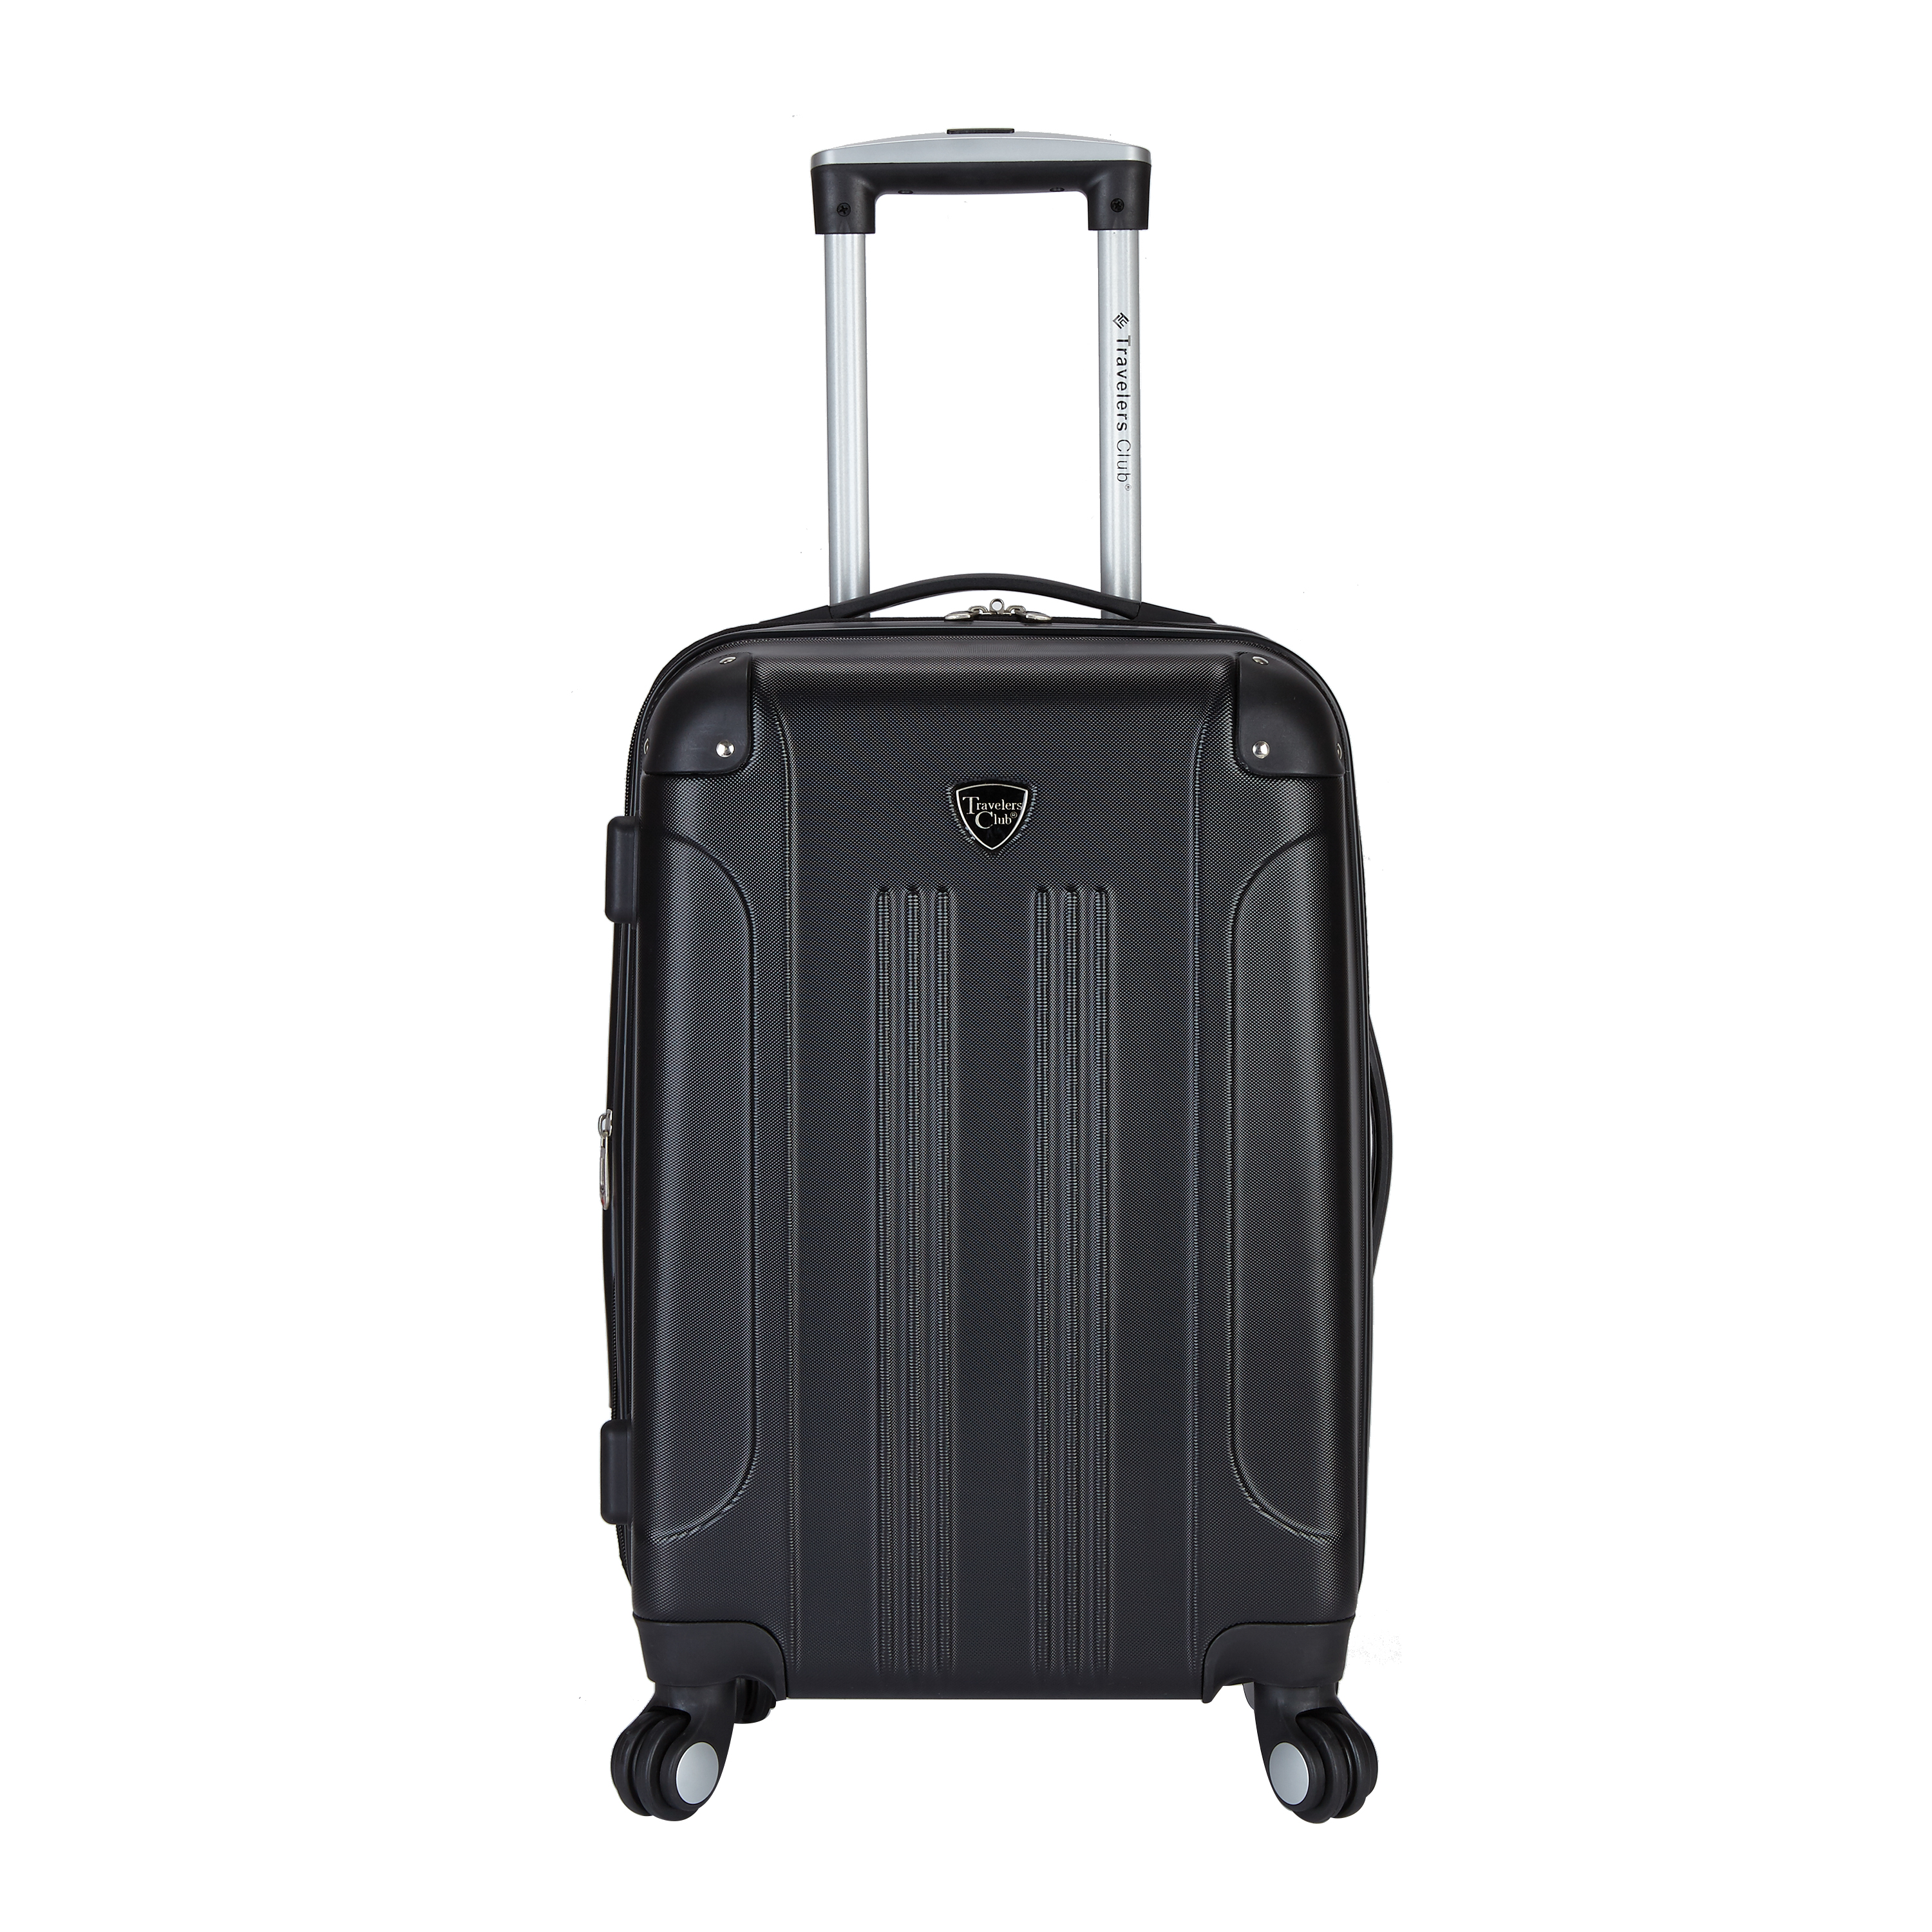 Travelers Club HS-20720-001 Chicago 20 in. Hardside